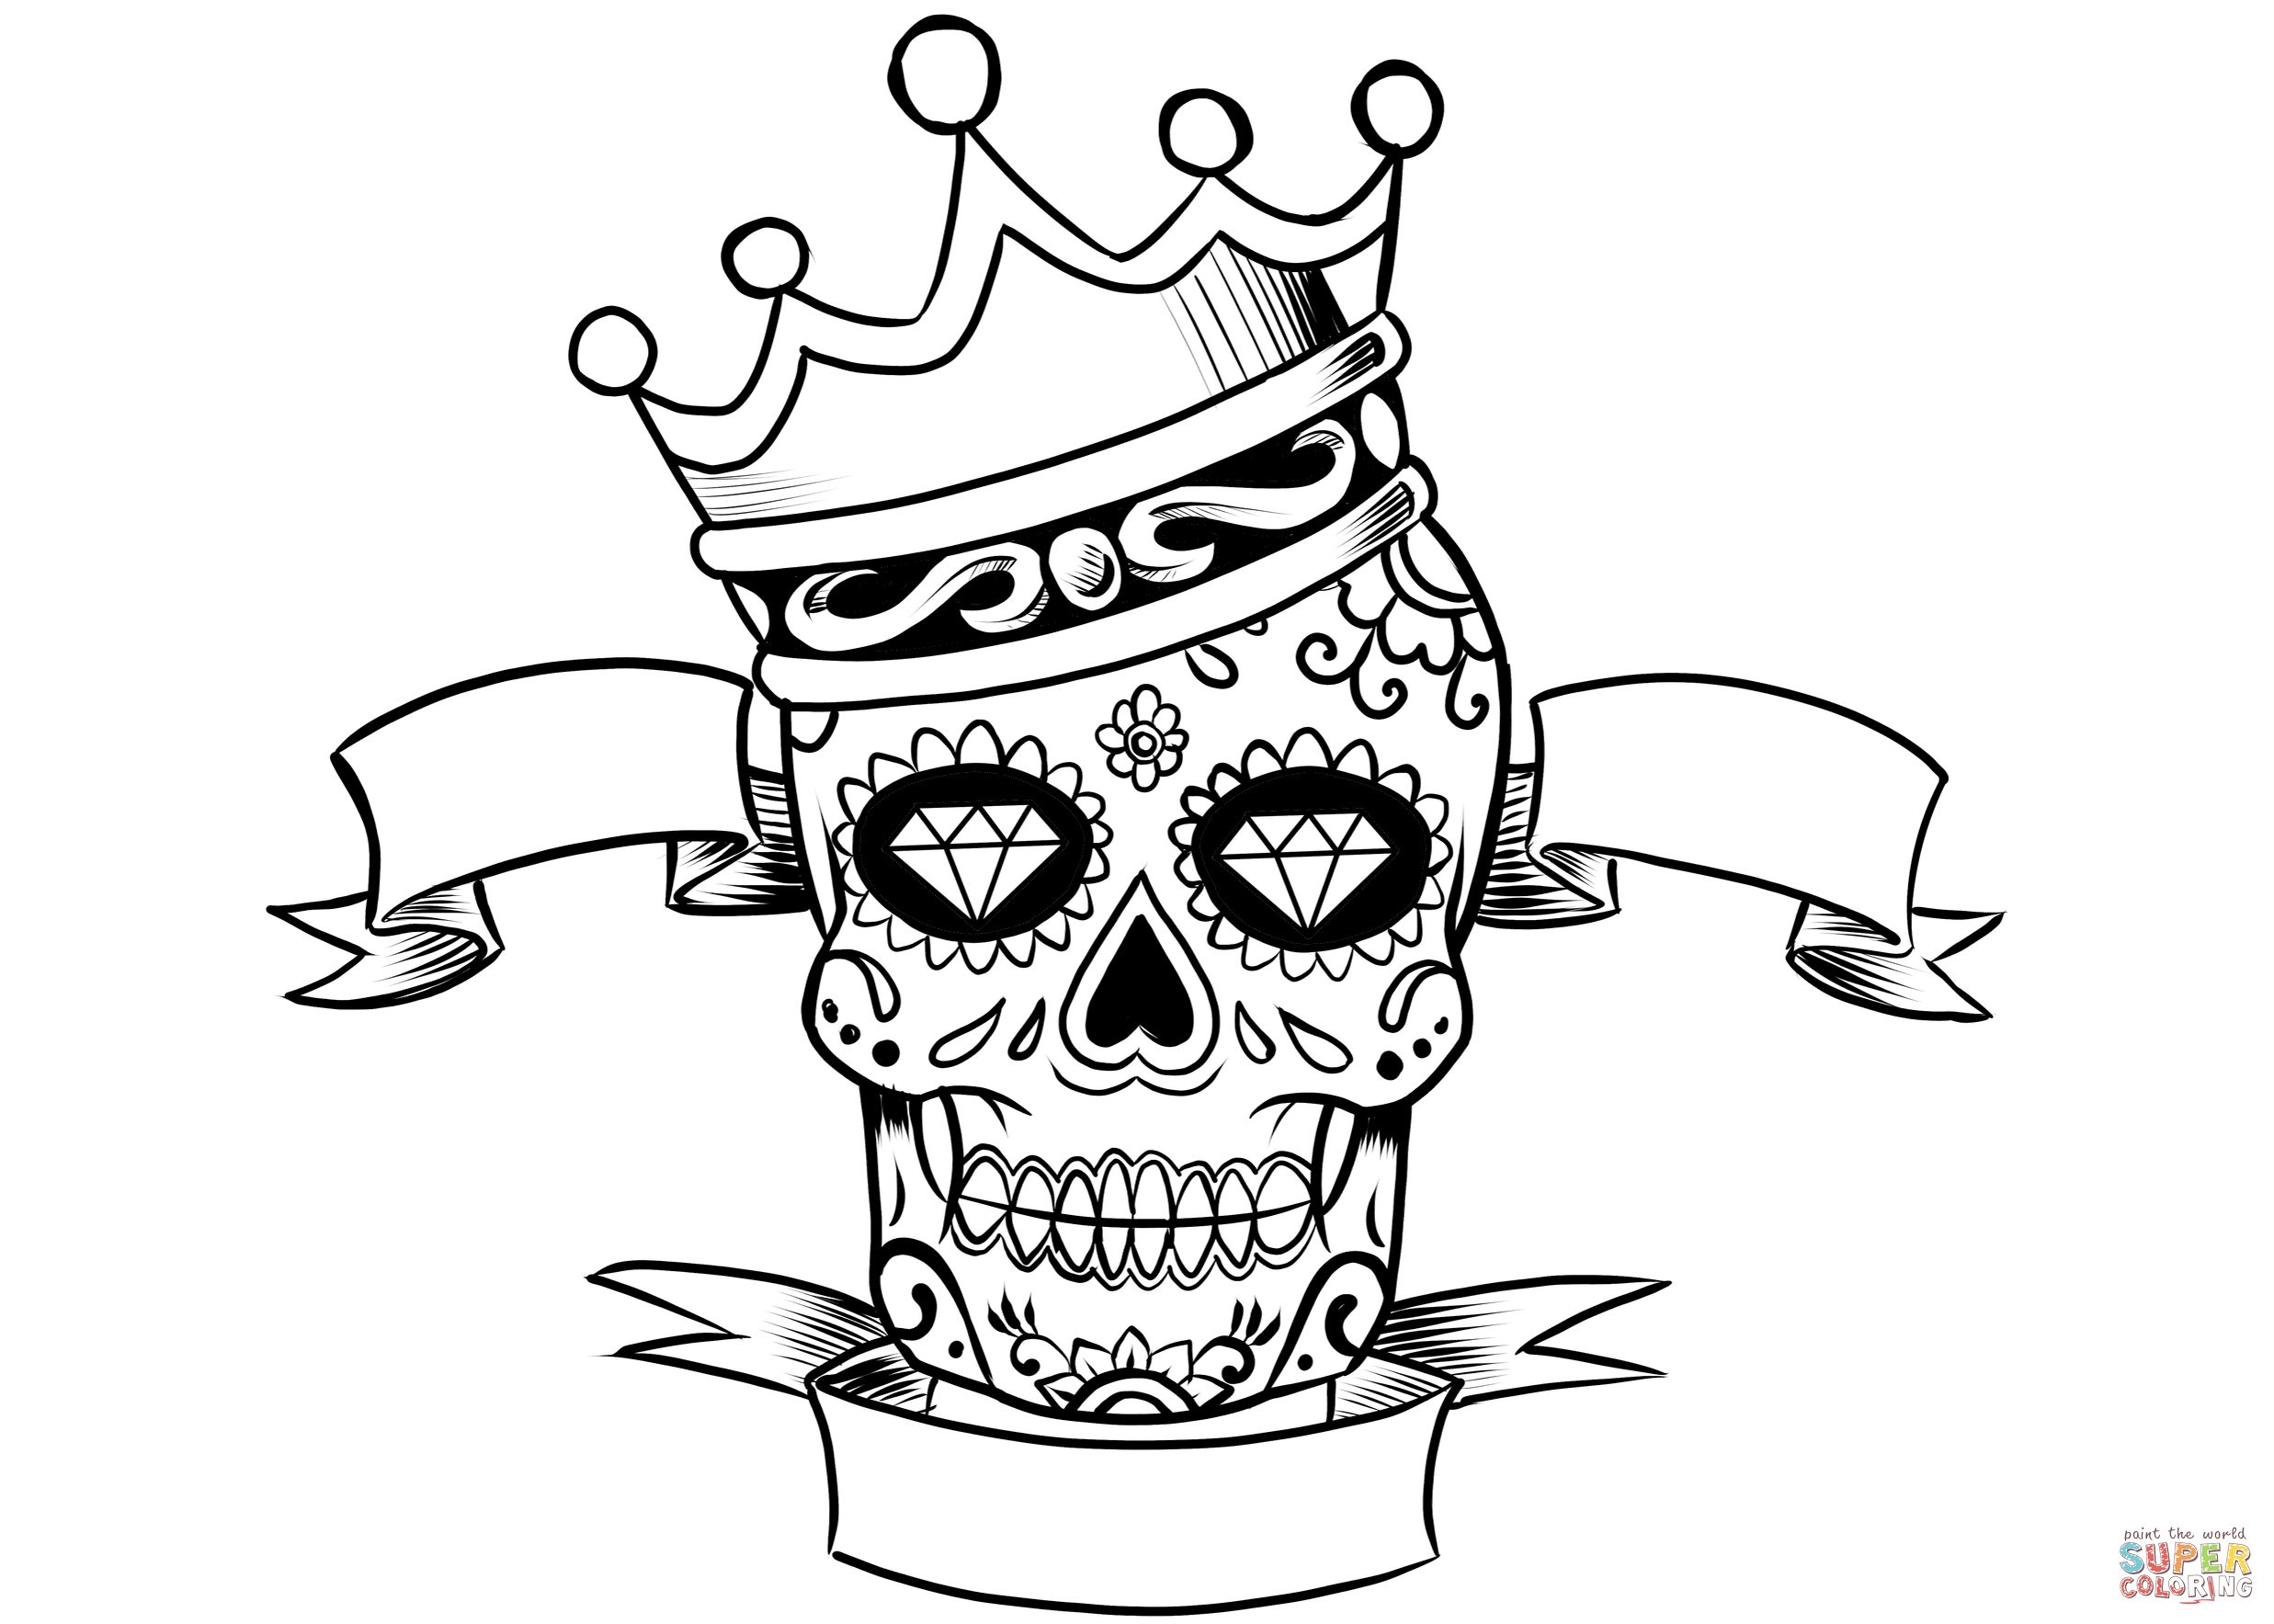 skull color coloring pages skull free printable coloring pages color skull